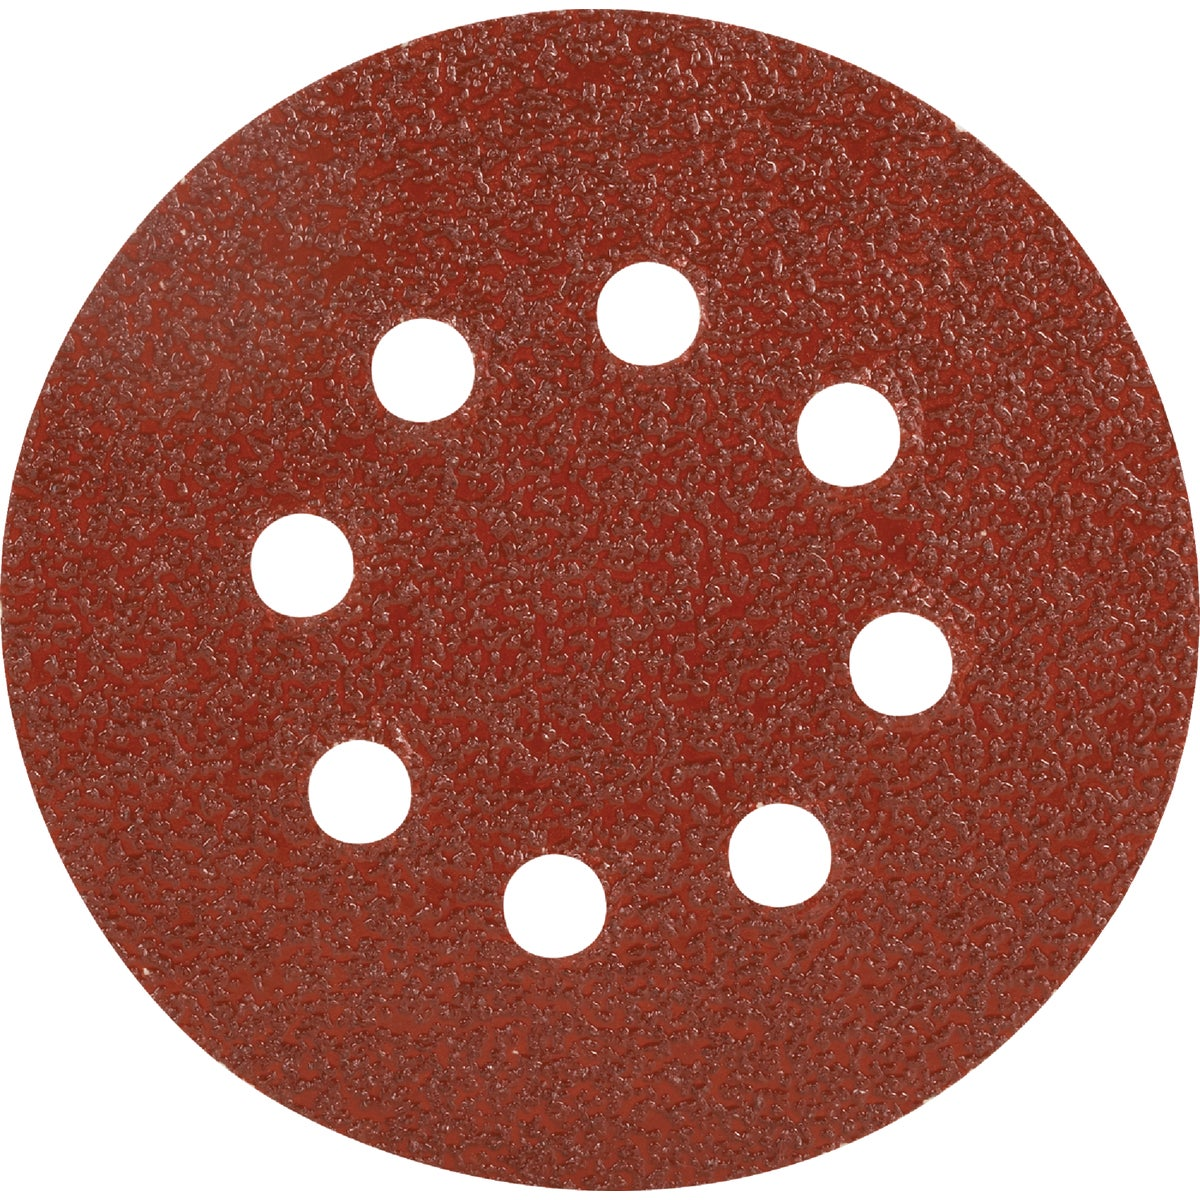 50PK 40G SANDPAPER - 354023 by Ali Industries Inc